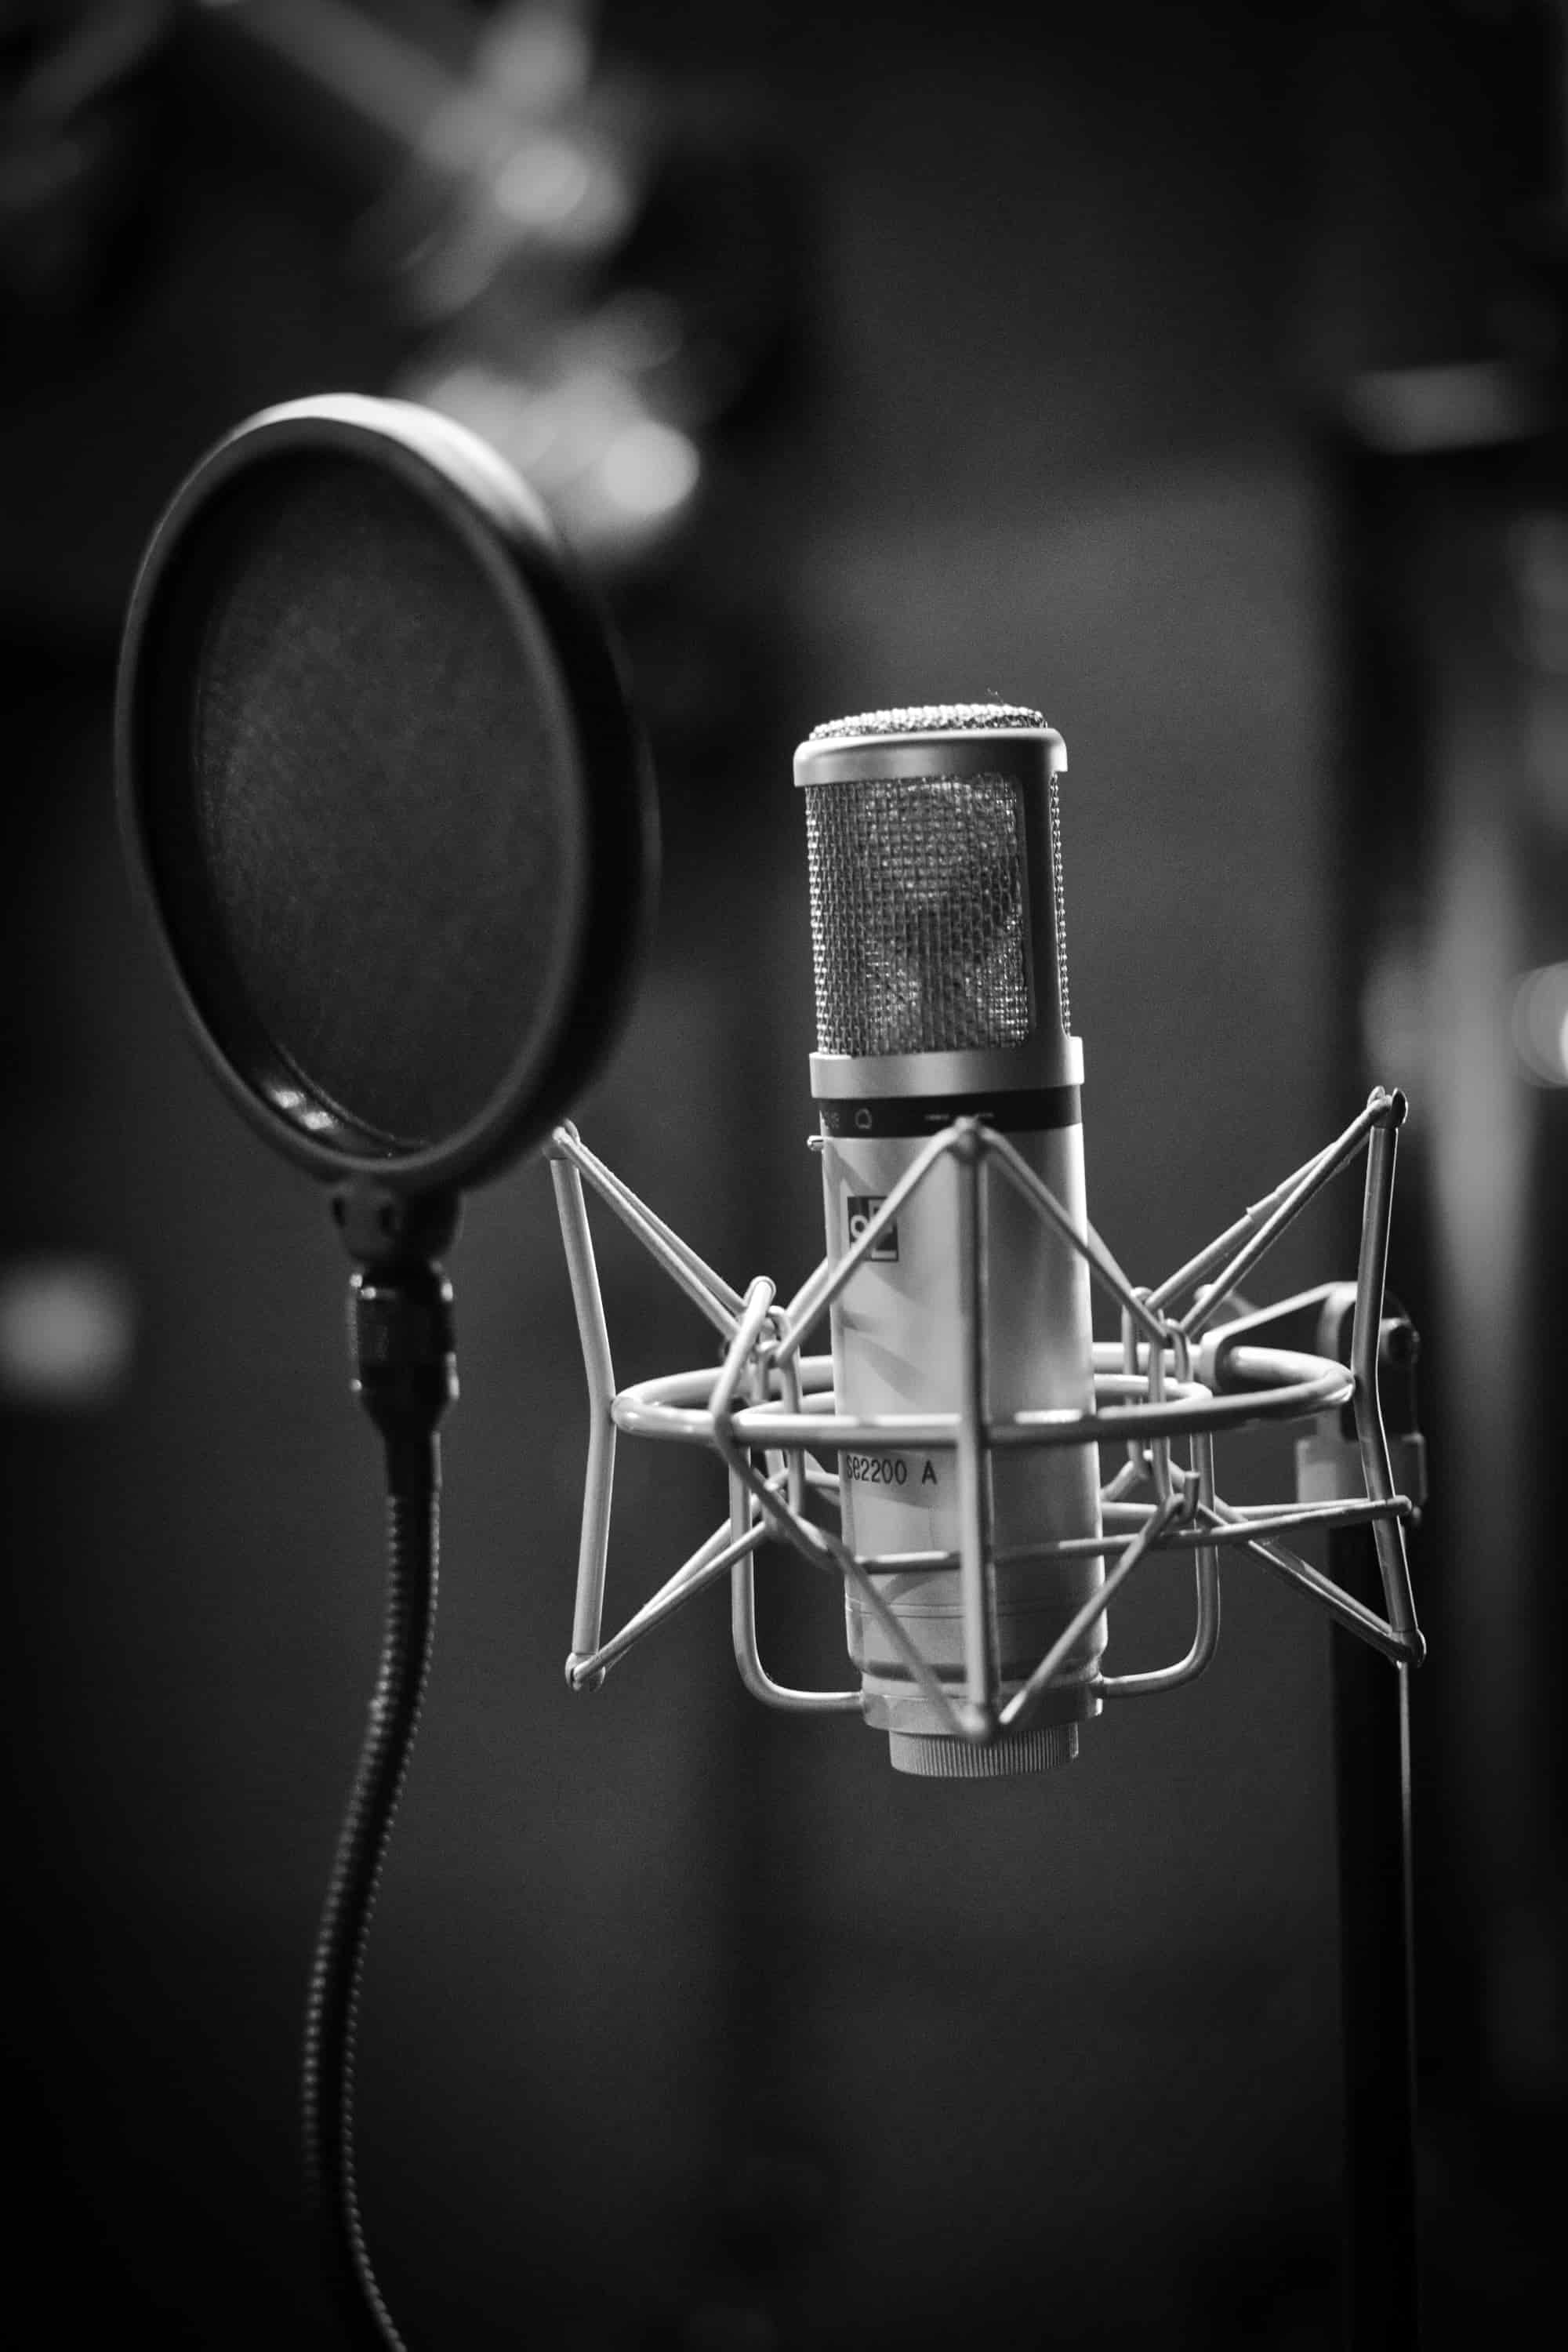 Quality microphones are important for podcasters